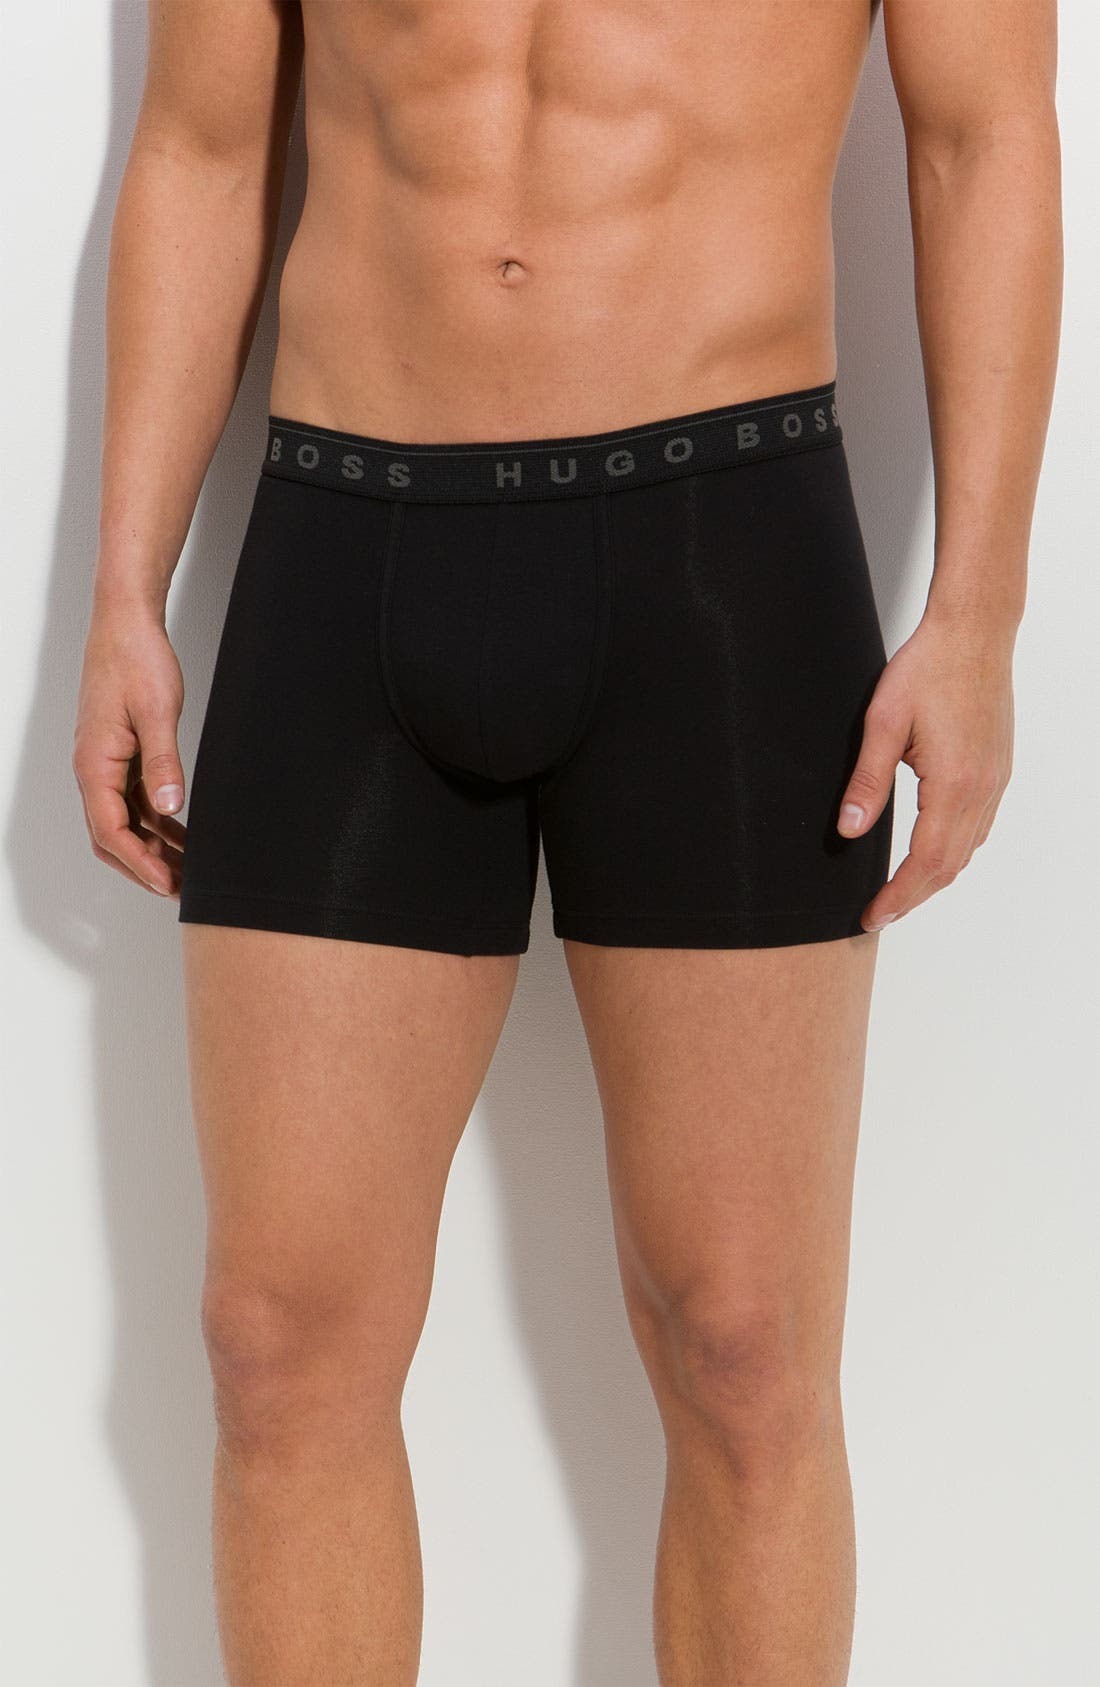 Alternate Image 1 Selected - BOSS Black 'Cyclist' Boxer Briefs (3-Pack)